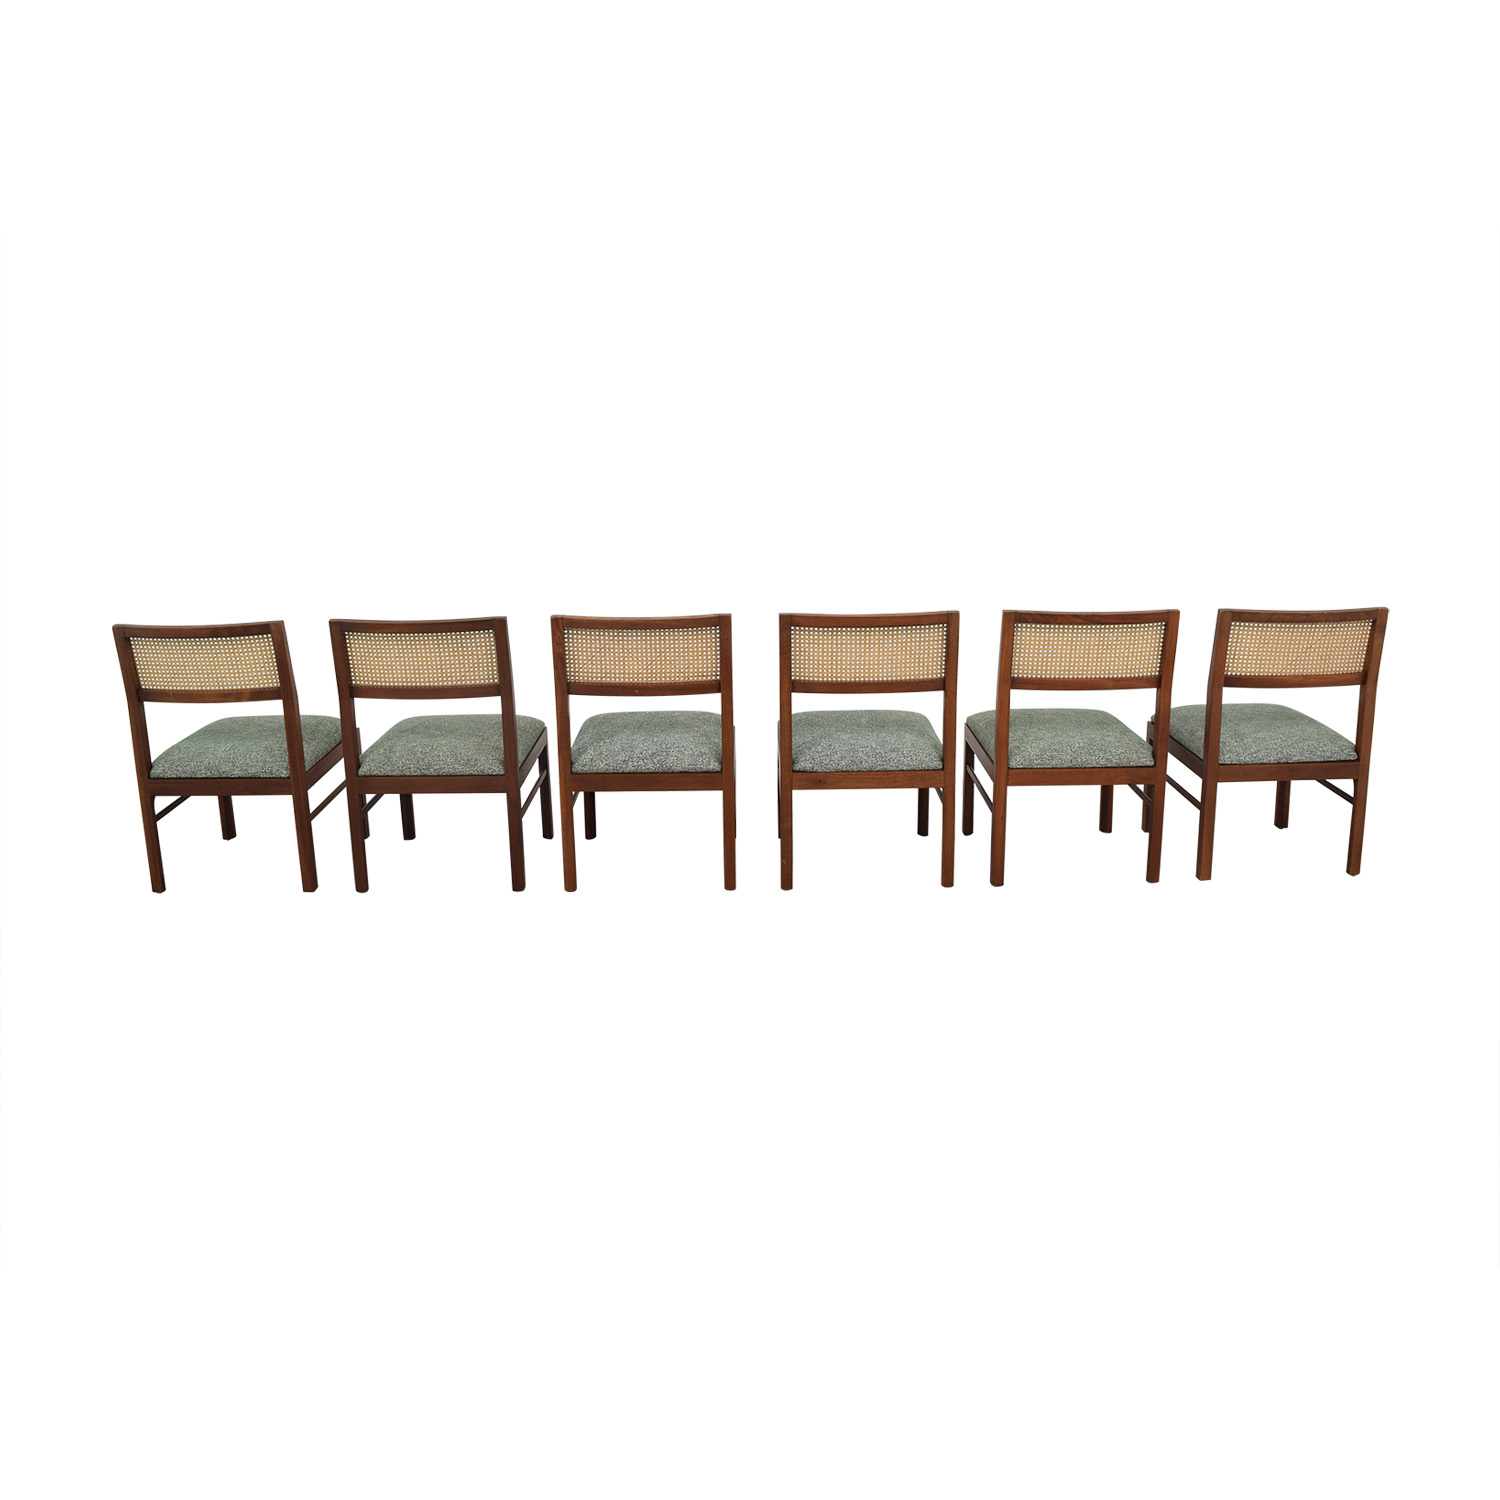 Cane Backed Dining Chairs for sale